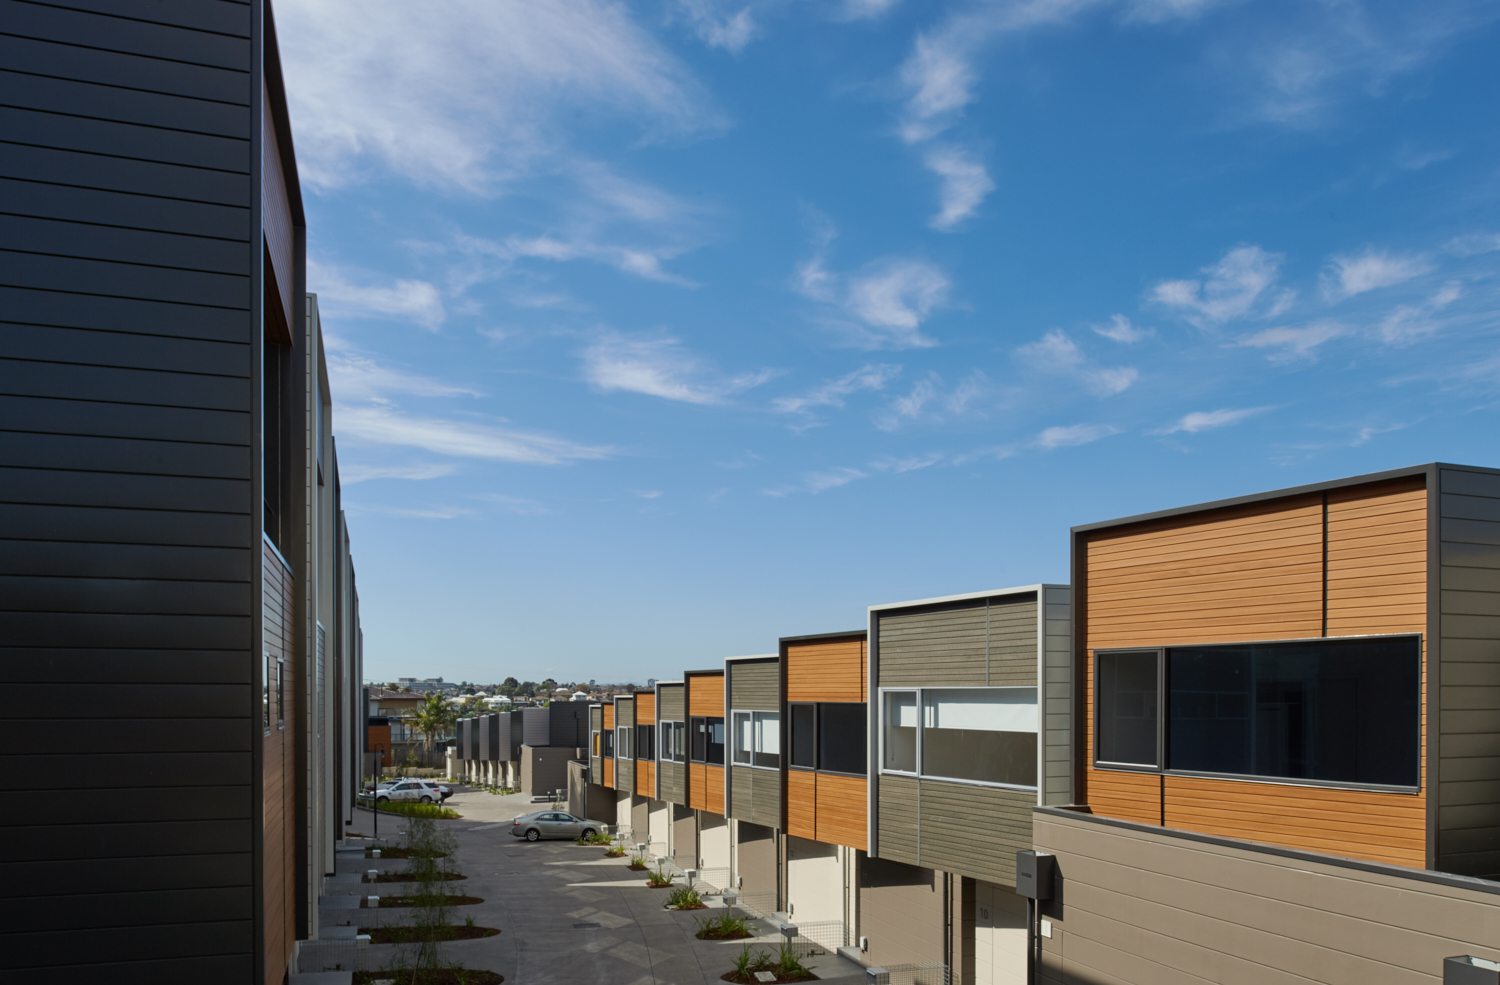 2ce02f0917a Horizon Drive Townhouses - S/PROJECTS - Personalised Property ...